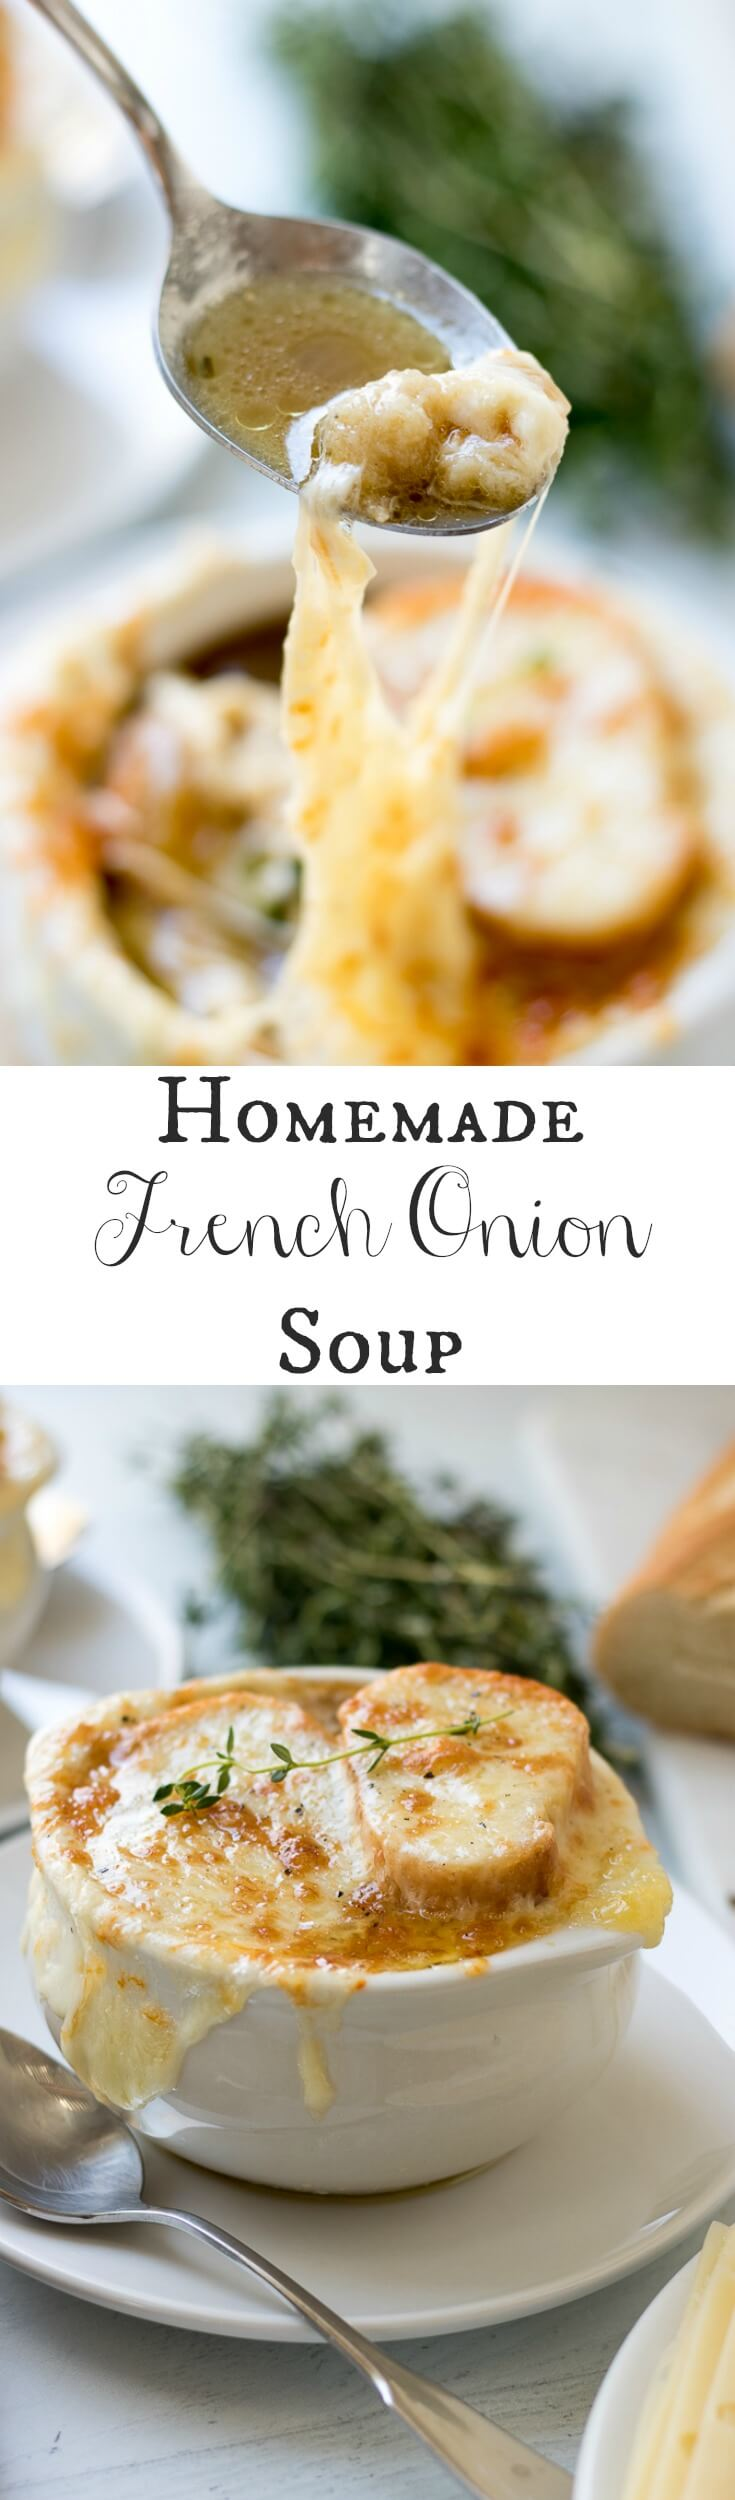 This Homemade French Onion Soup recipe has the flavors of a classic French onion soup that you would find at a restaurant, yet, it is easy to prepare in your home kitchen. Caramelized onions in a reduction of white wine and sherry with herbs of thyme and bay leaves in a clear beef broth make this soup delicious. #onions #Frenchonionsoup #cheese #recipe #Frenchbread #homemade #thyme #garlic #Muentser #Swiss